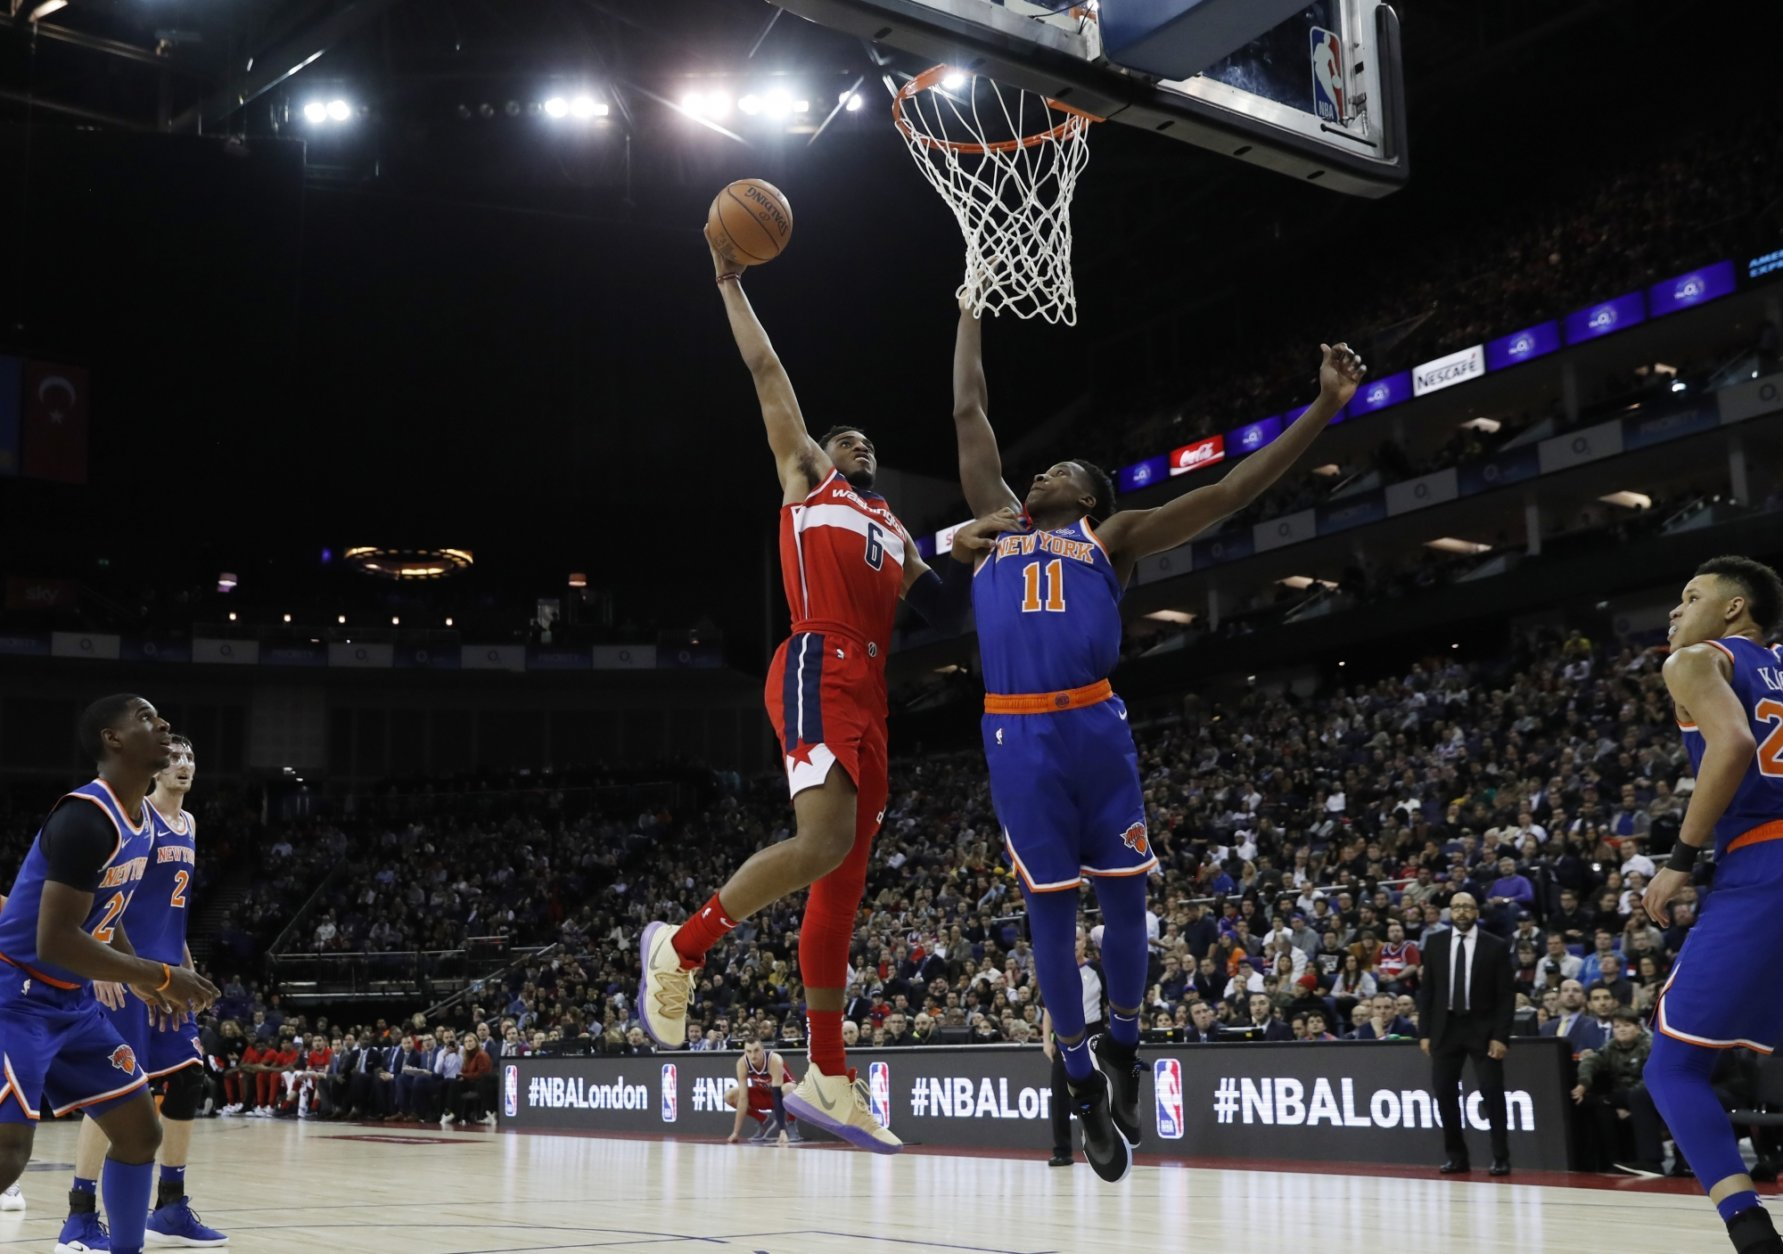 Washington Wizards forward Troy Brown Jr. (6), left, drives to the basket as New York Knicks guard Frank Ntilikina (11) defends, during an NBA basketball game between New York Knicks and Washington Wizards at the O2 Arena, in London, Thursday, Jan.17, 2019. (AP Photo/Alastair Grant)